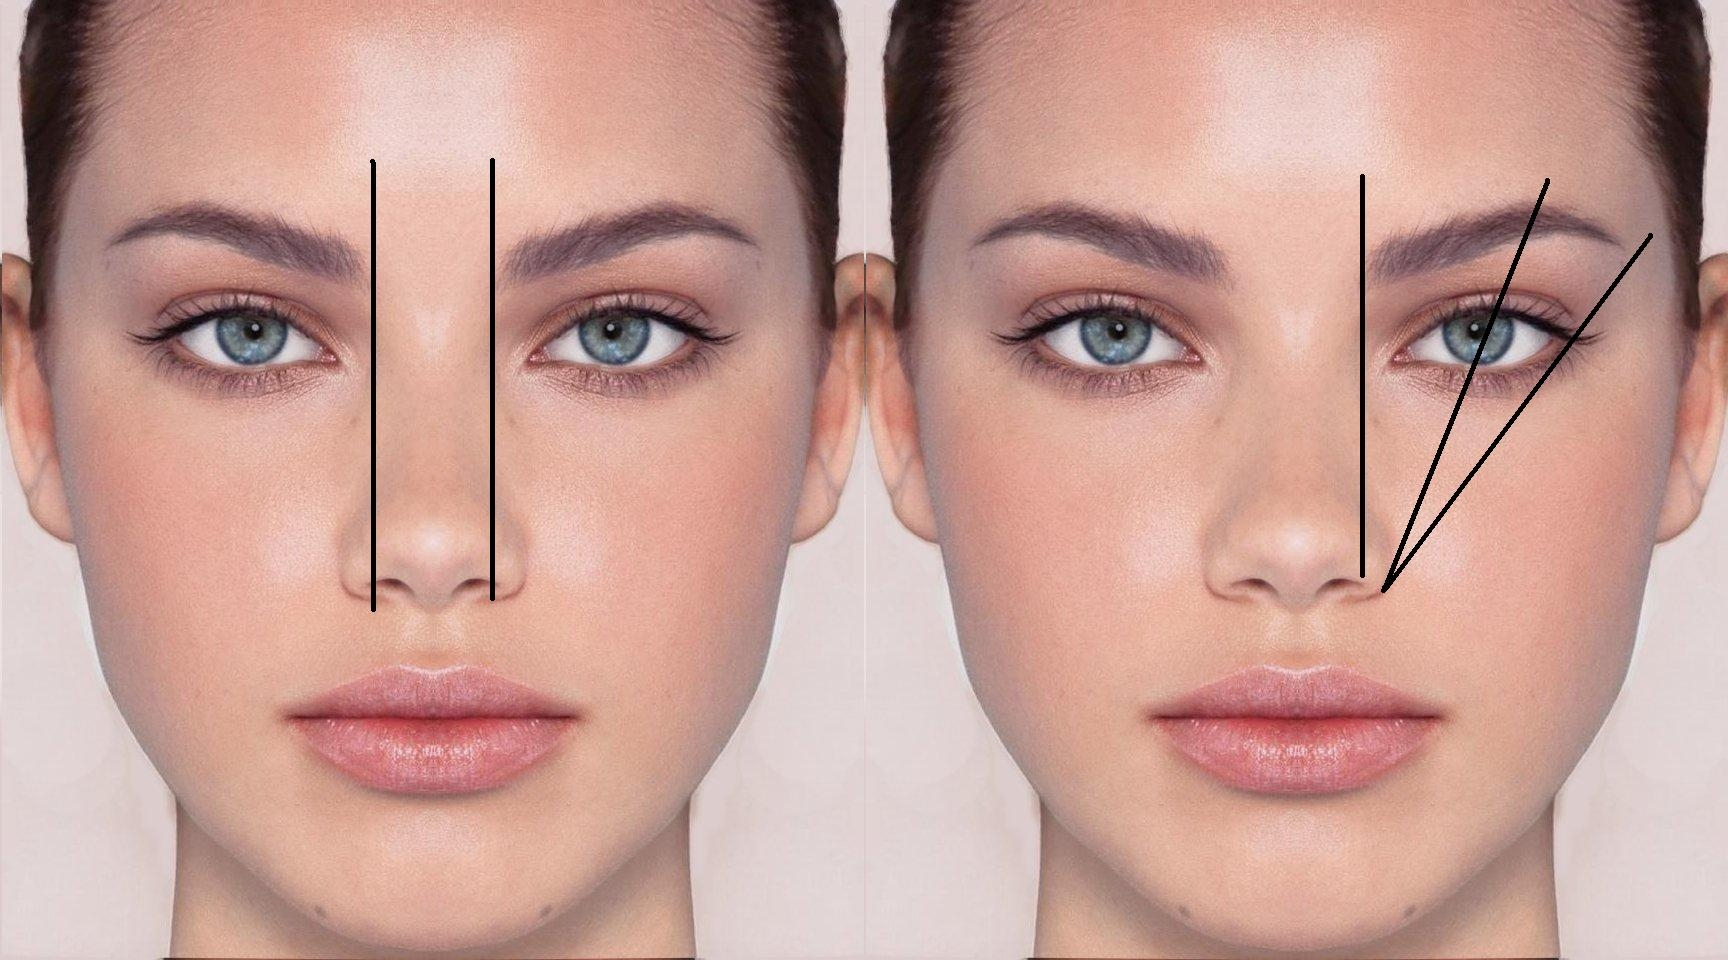 How To Shape Smaller Nose Without Surgery